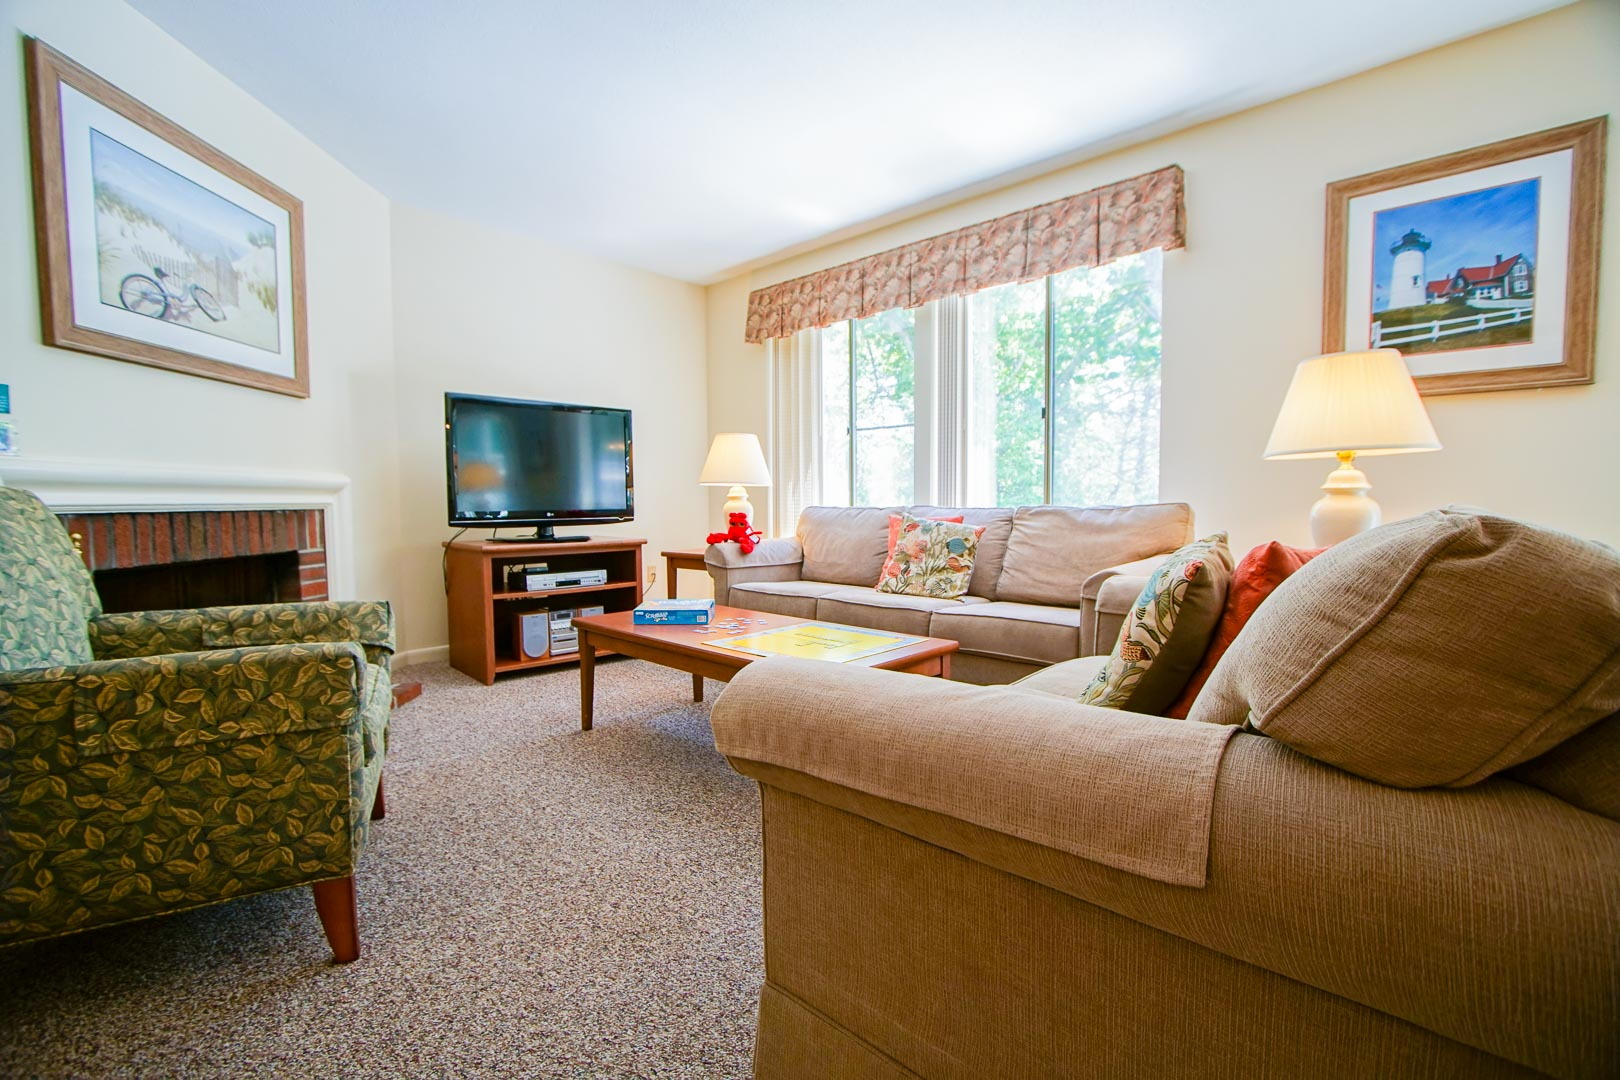 A spacious living room area at VRI's Brewster Green Resort in Massachusetts.